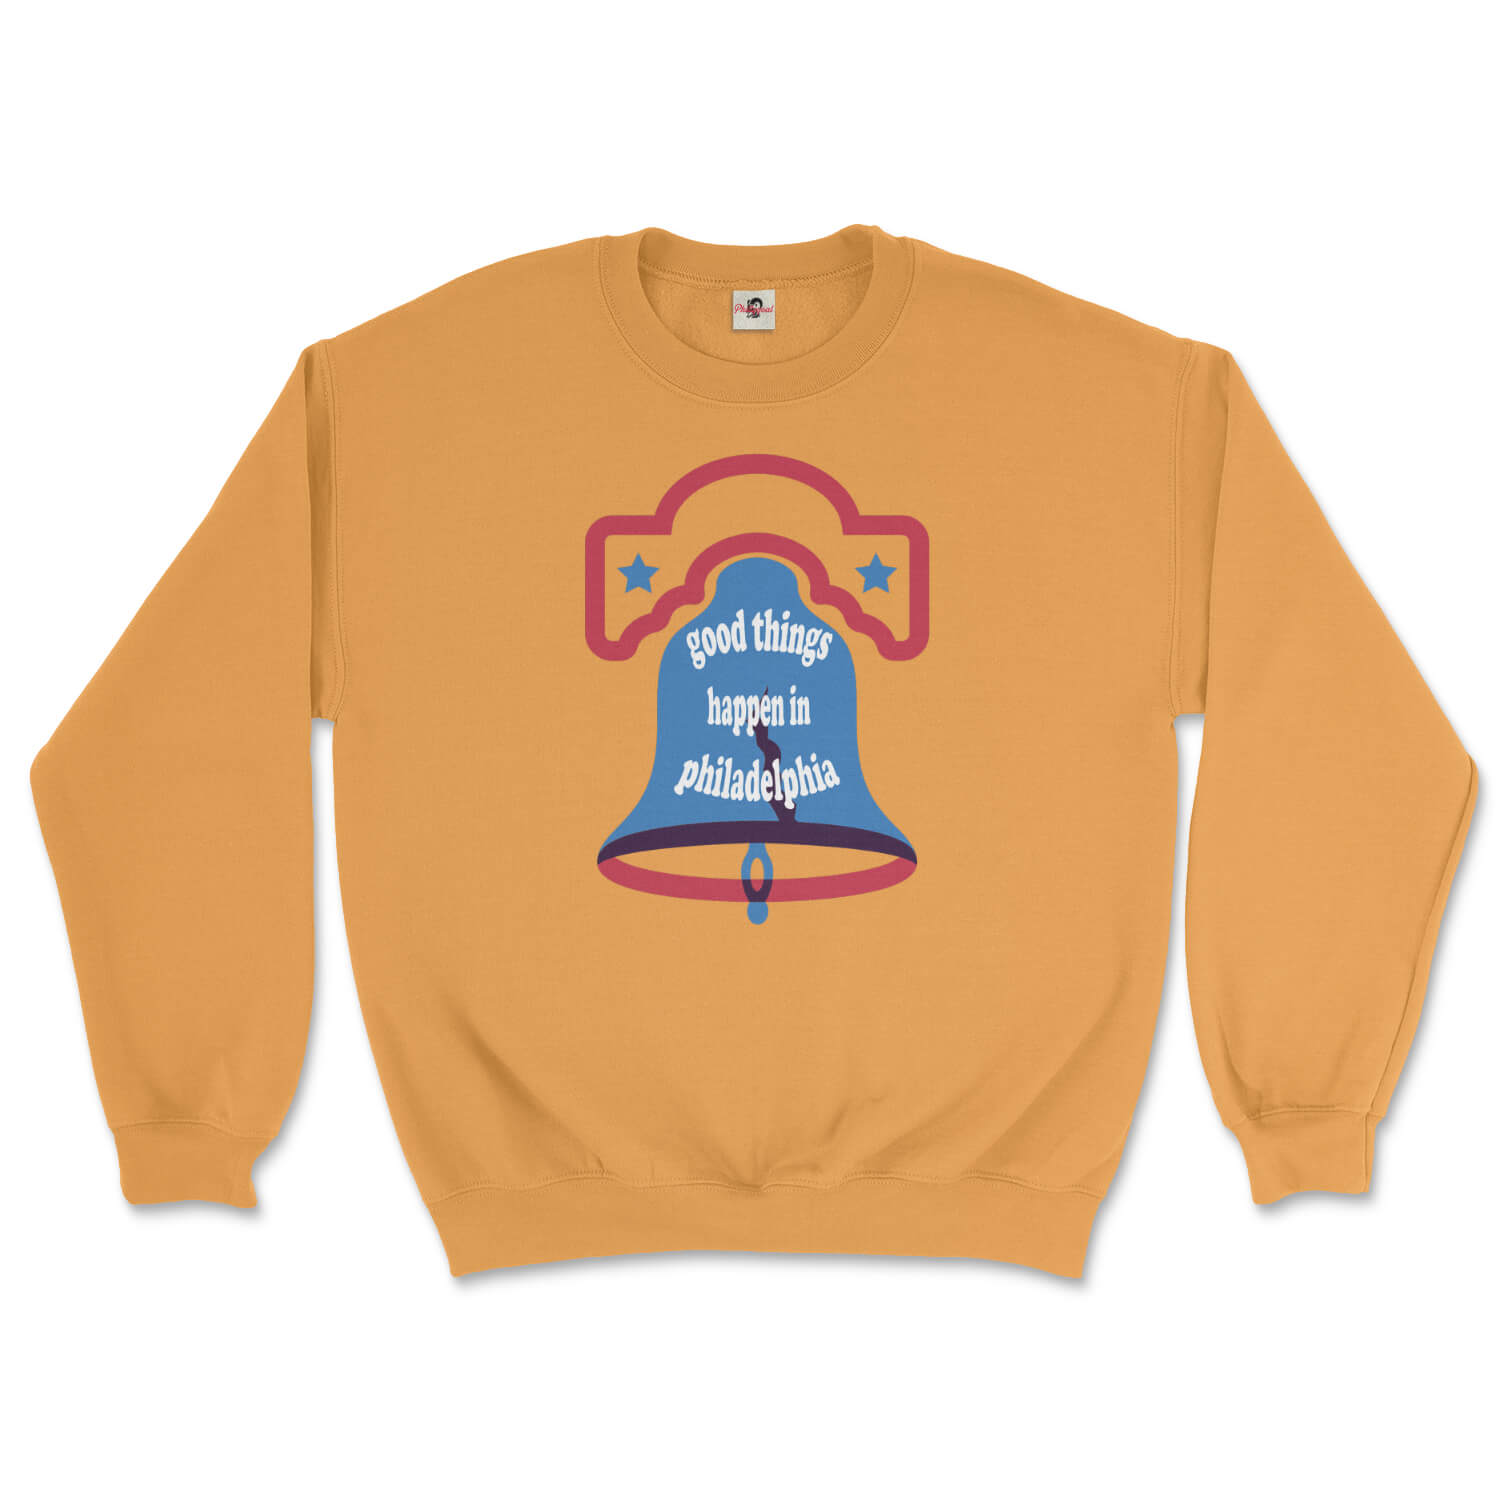 good things happen in philadelphia liberty bell design on a gold yellow sweatshirt from phillygoat